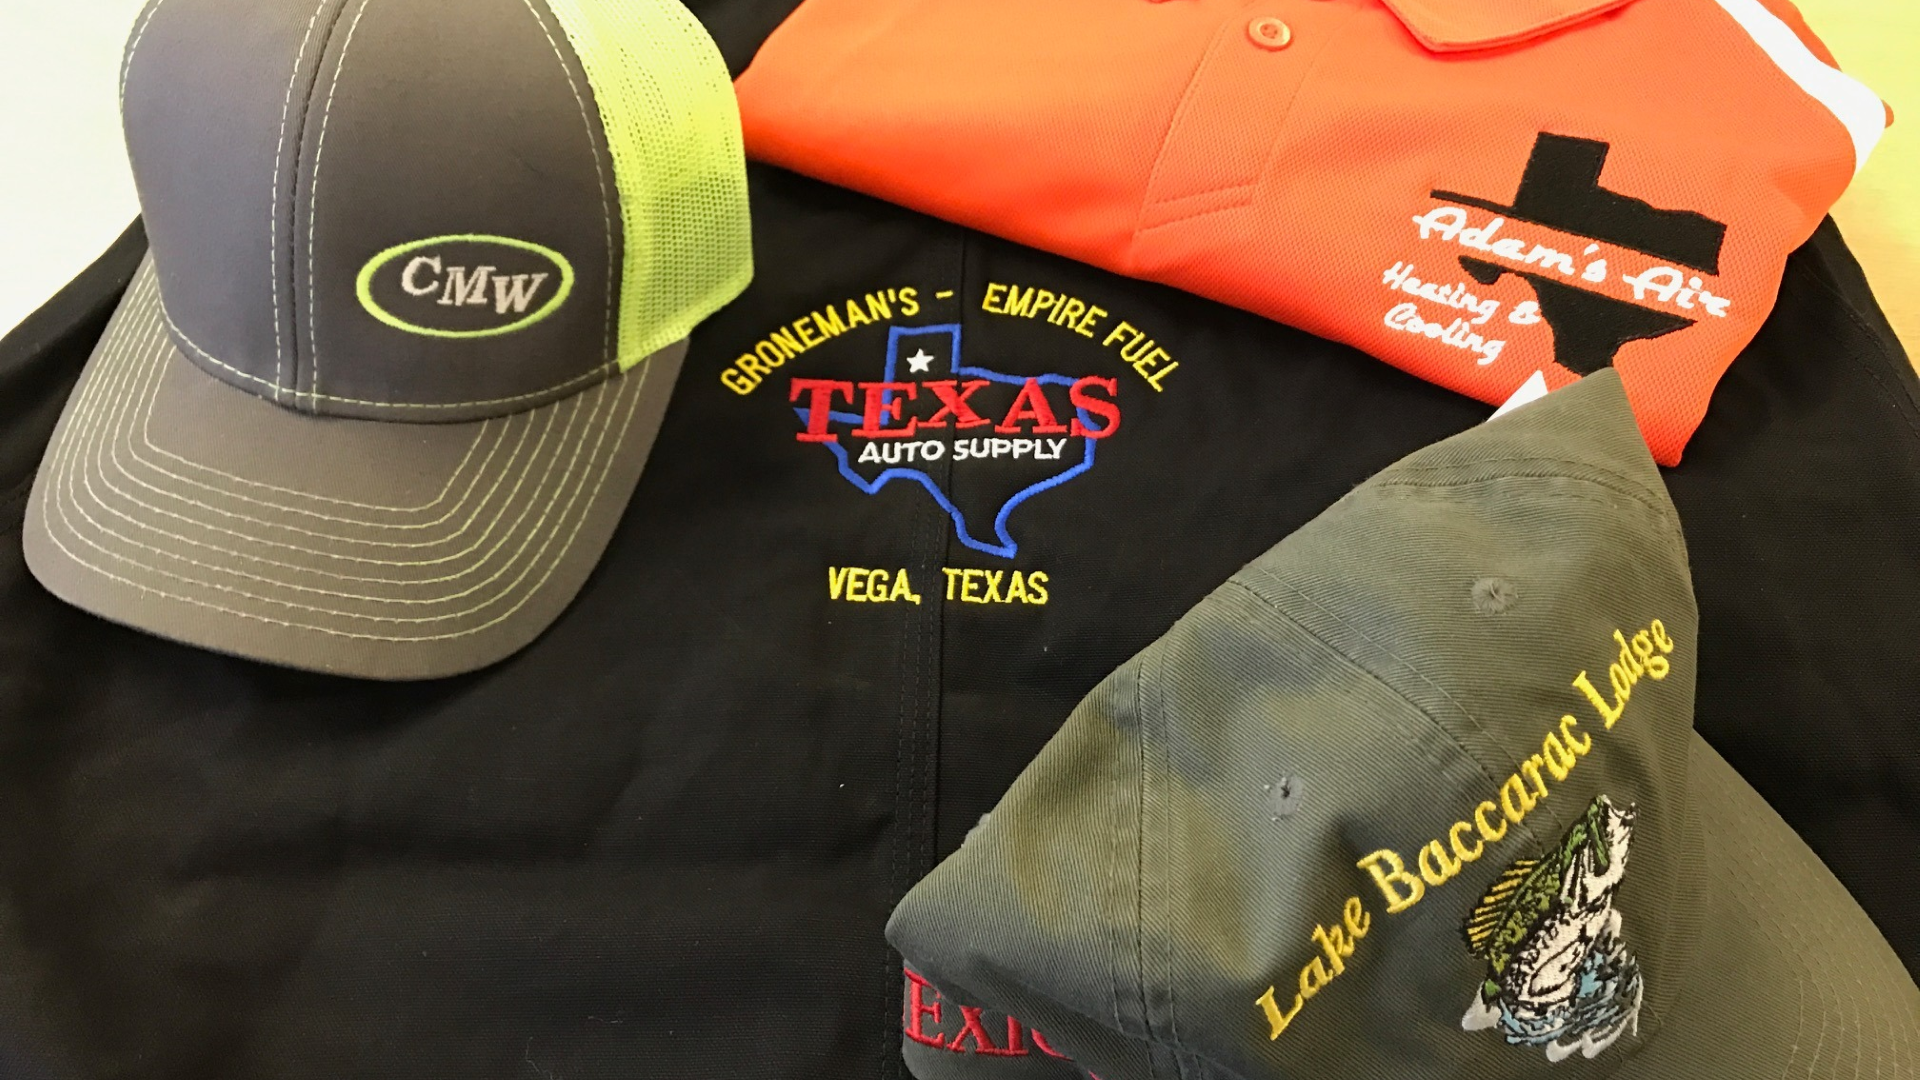 Custom Embroidered Shirts And Hats – DACC